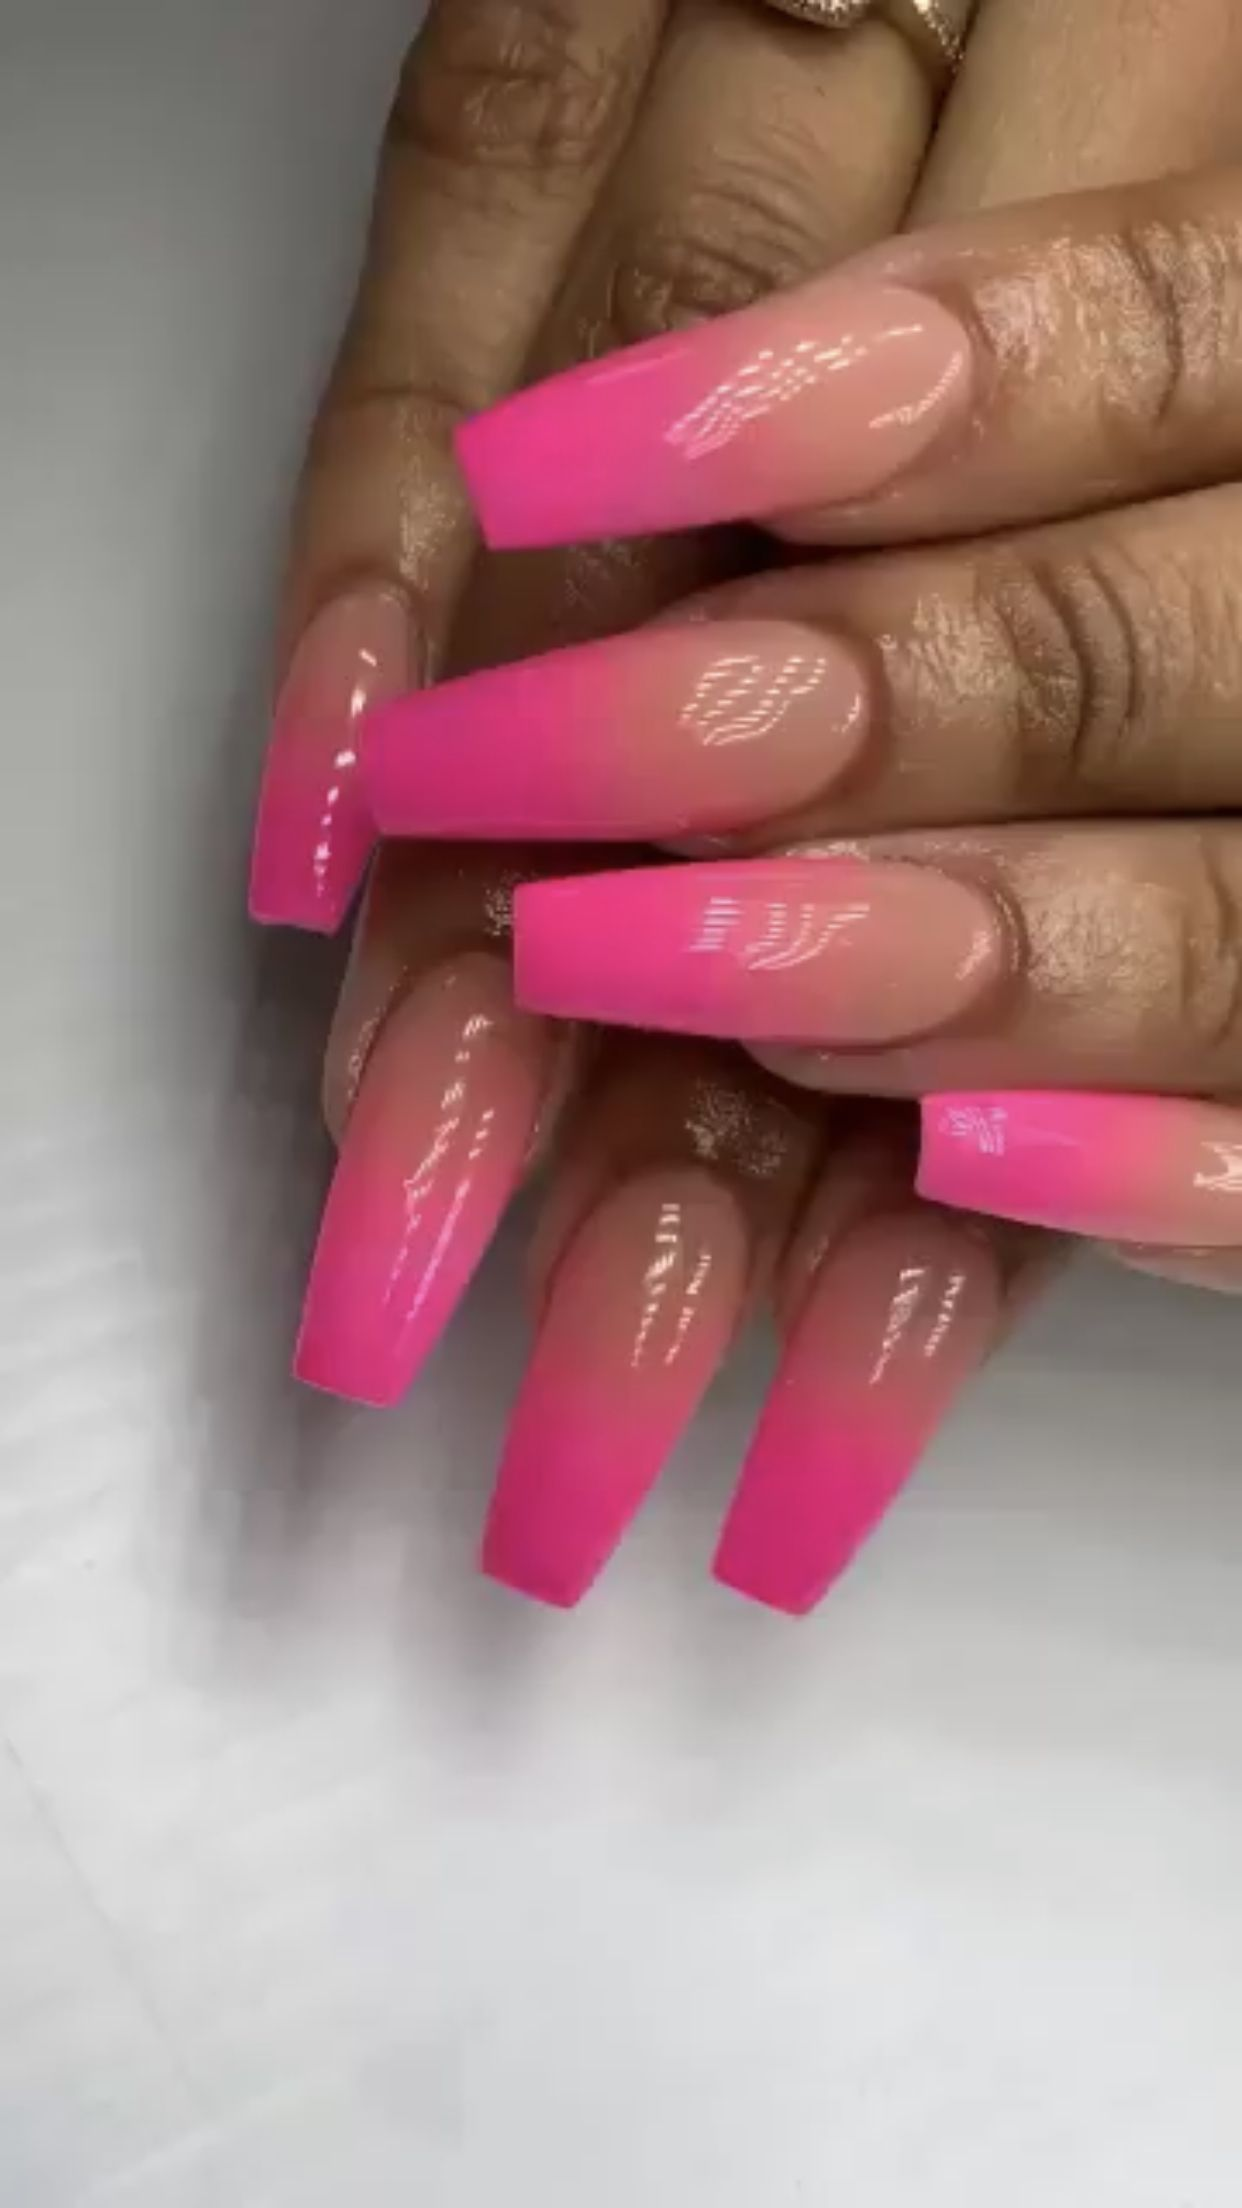 Pin By Deanna Marie On Nails Pink Ombre Nails Pink